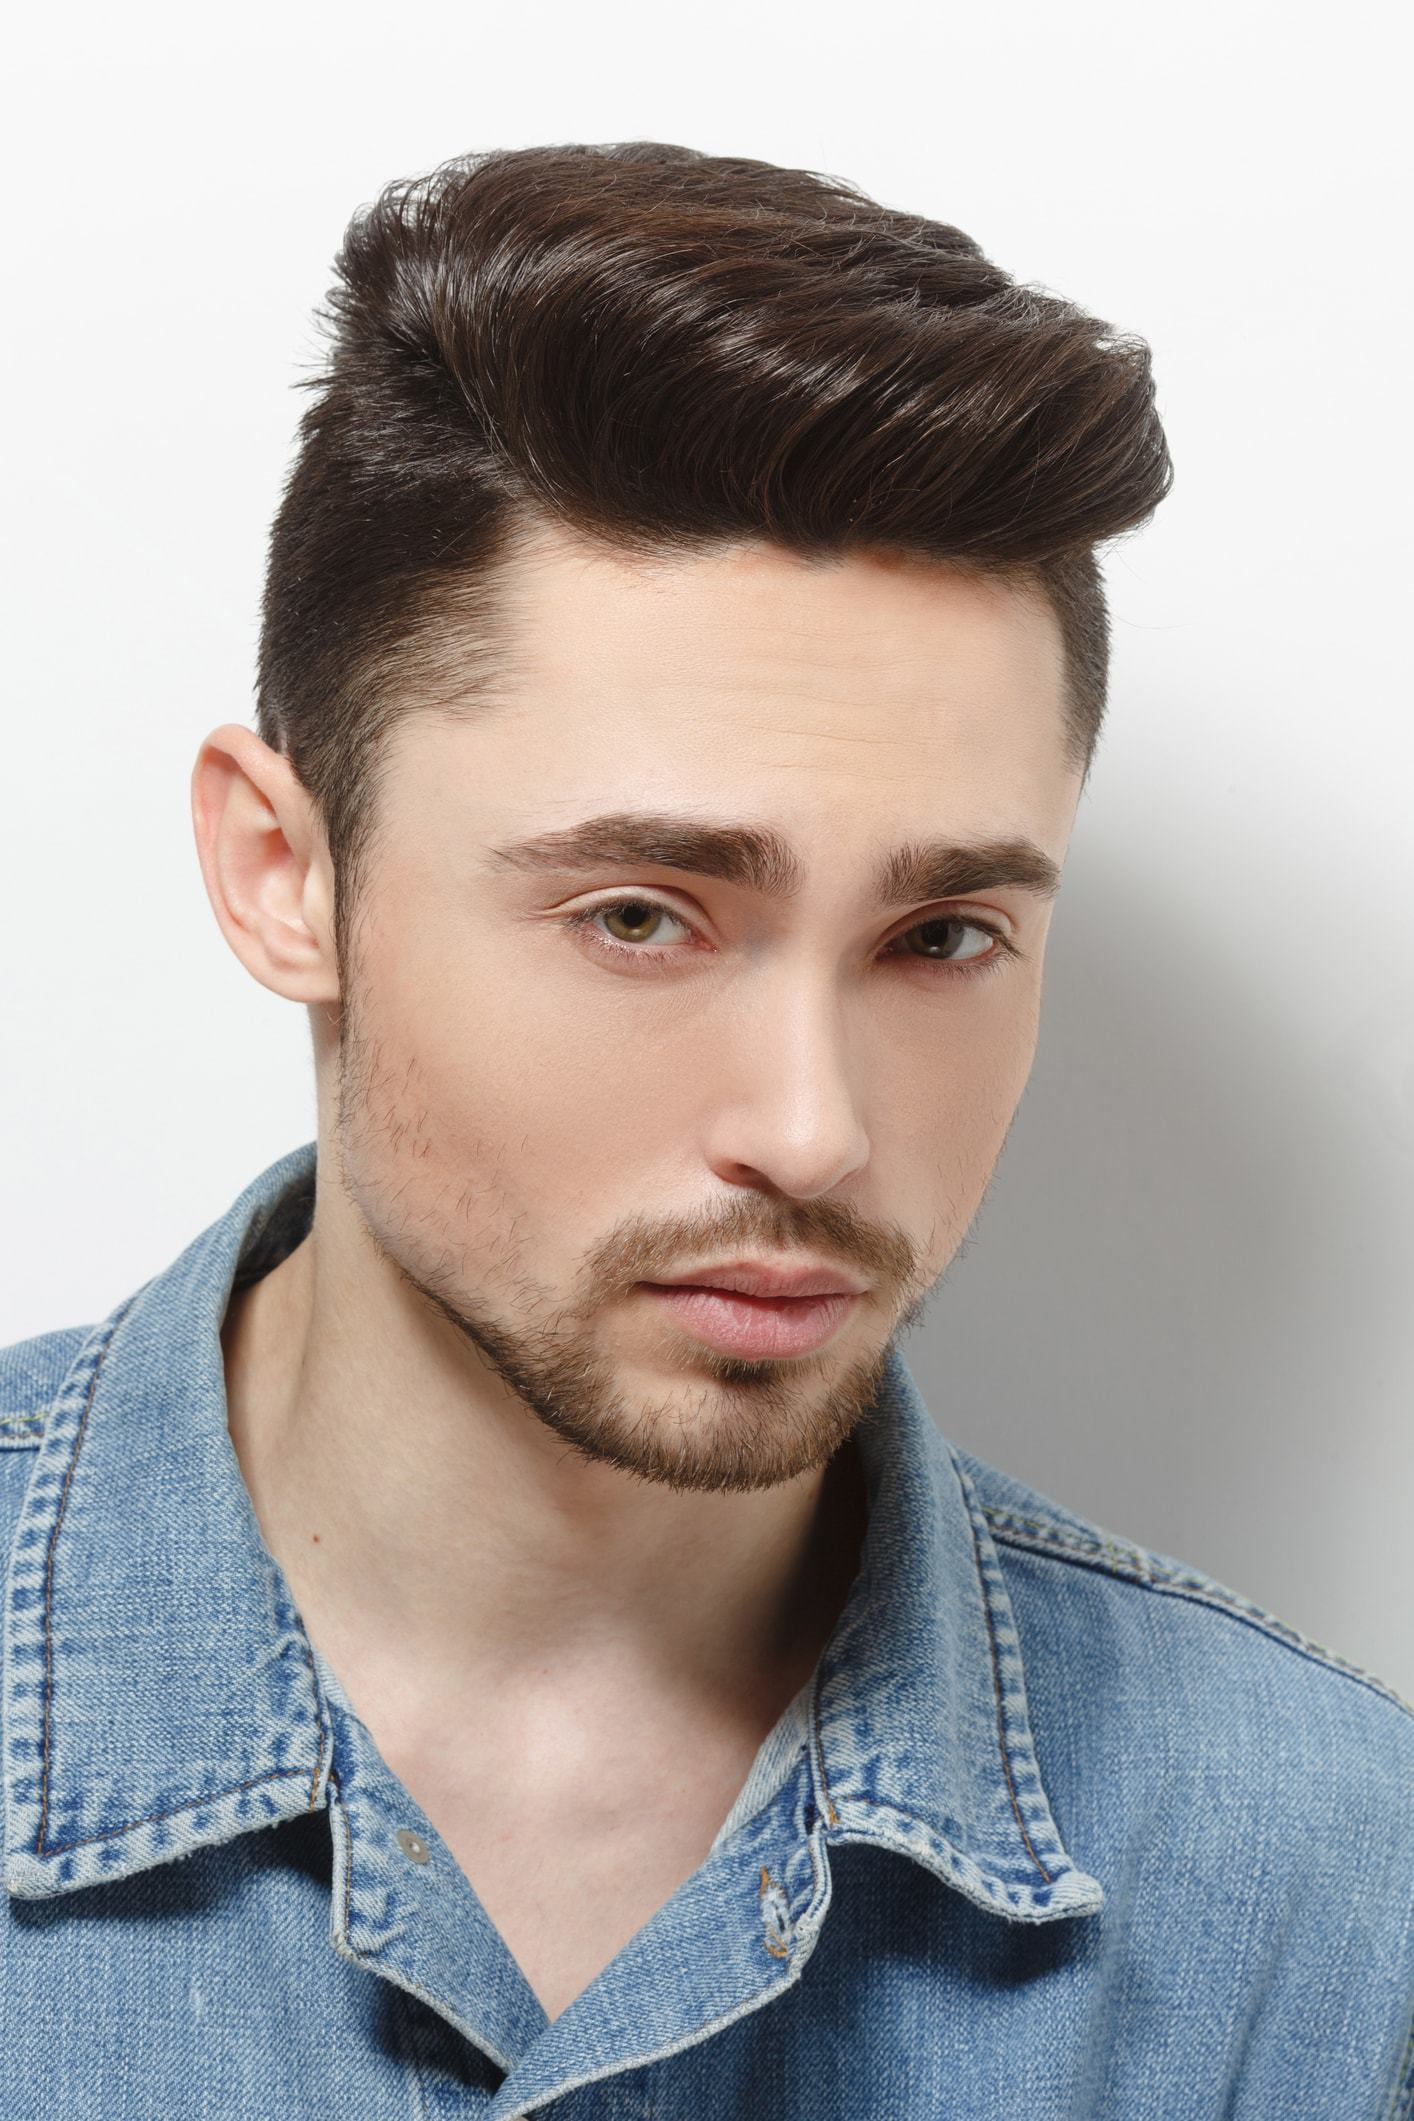 men thick hair styles how a part haircut adds an instant edge to your look 8908 | hard part haircut thick hair min